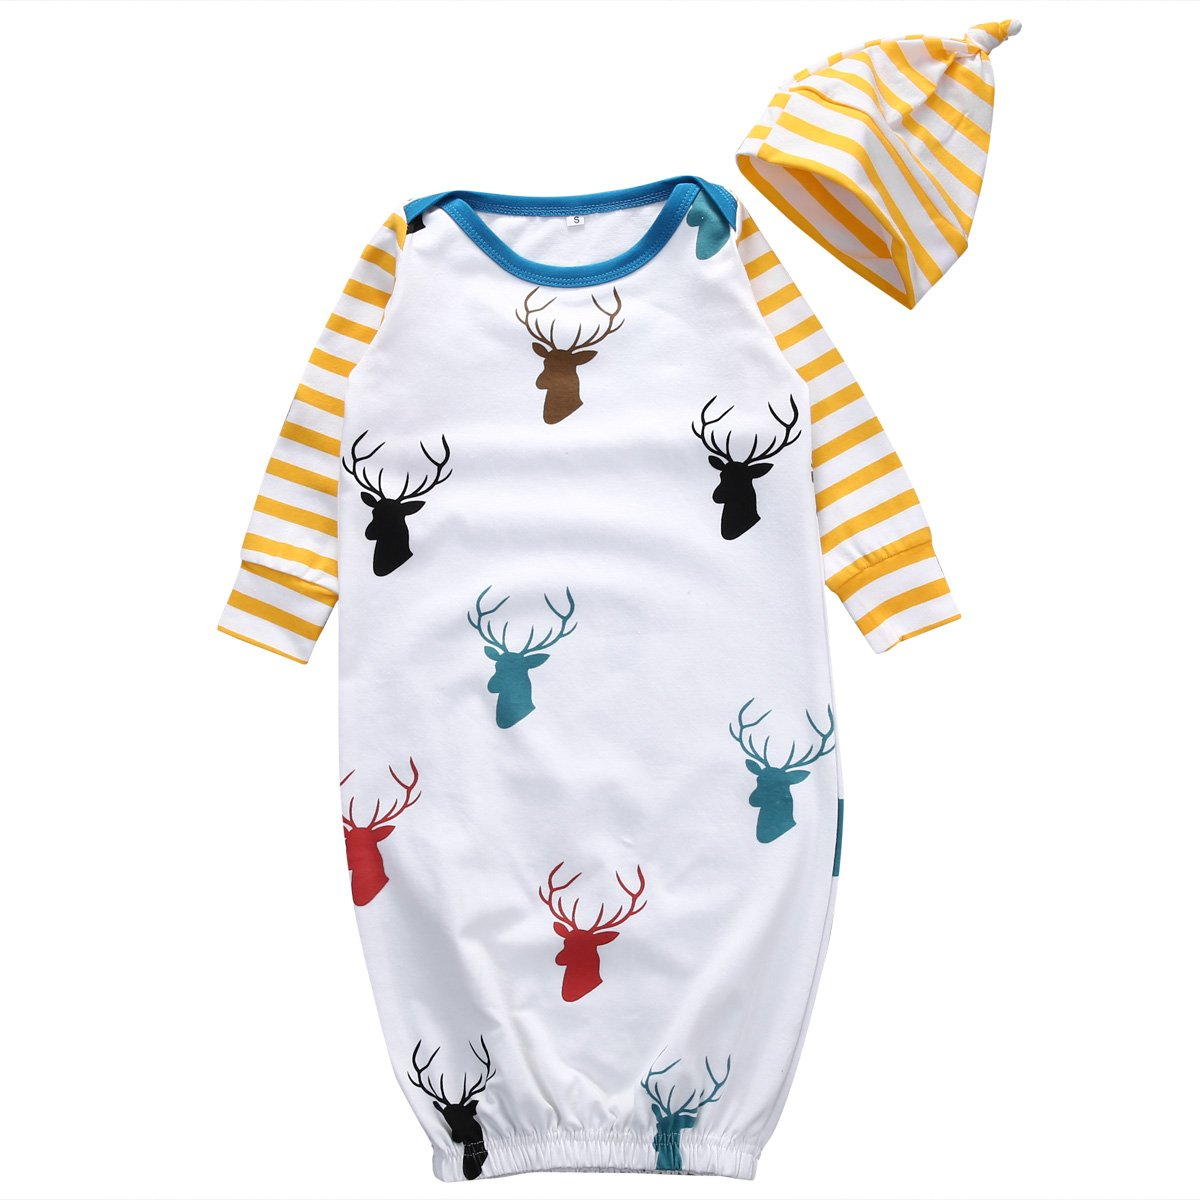 Newborn Sleep Gown Swaddle Infant Baby Nightgowns+Beanie Hat Sleepwear Set Coming Home Wear 6-12 Months, Deer